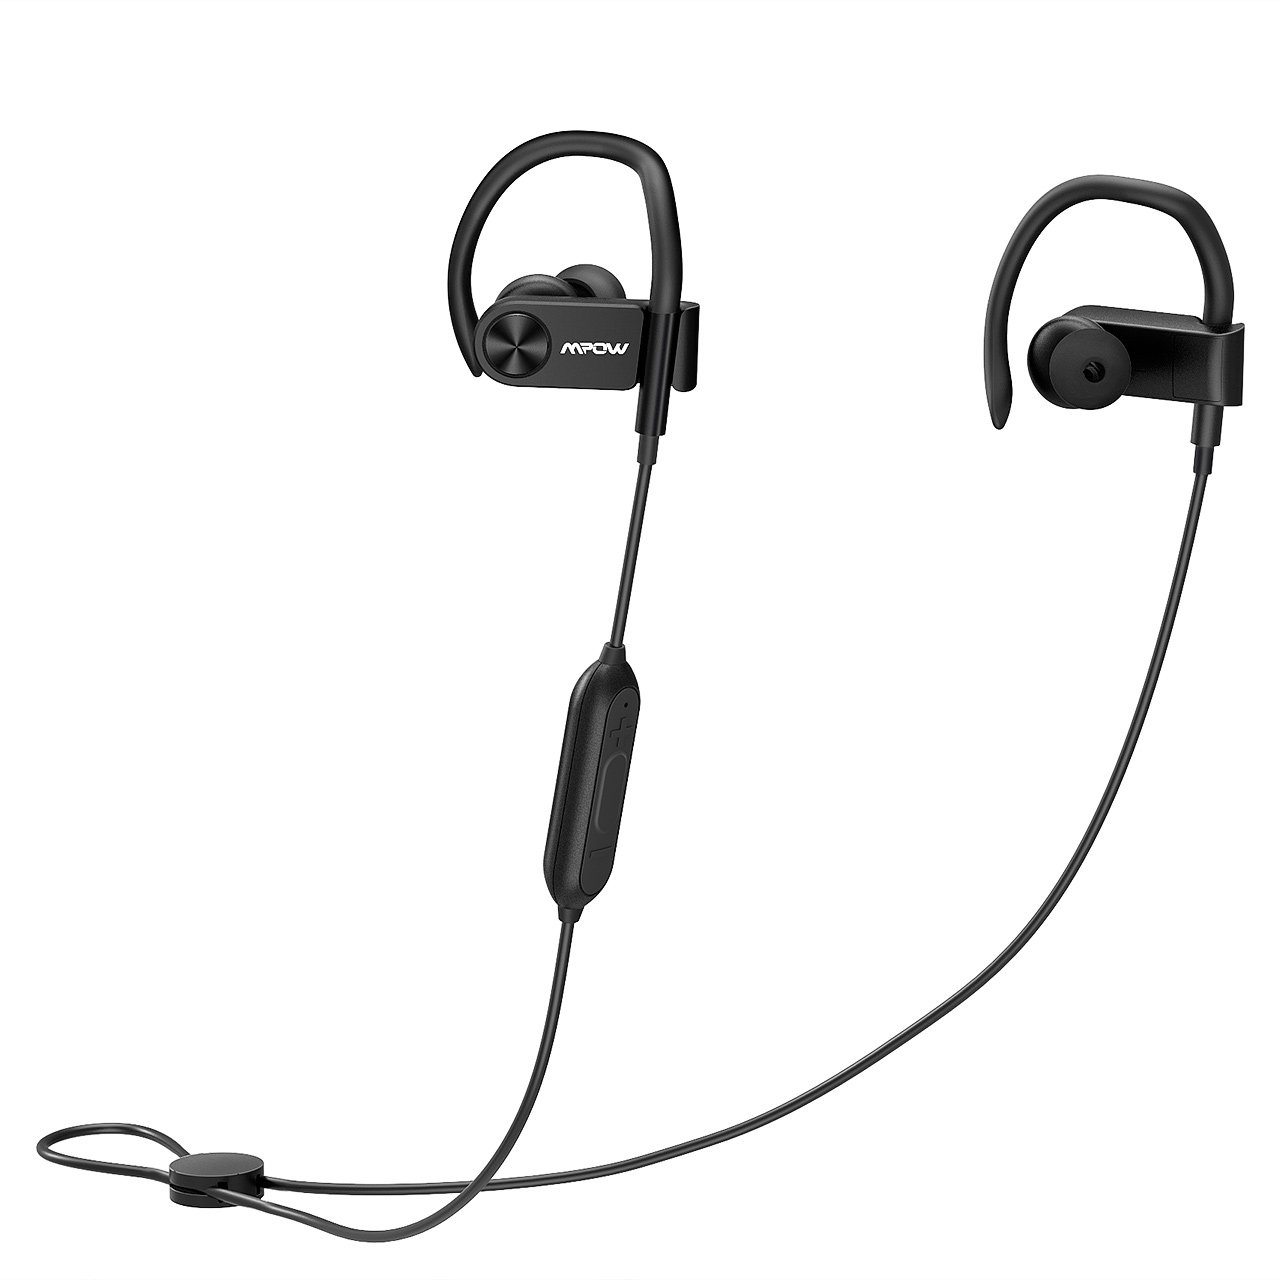 c491b92f402 Mpow D2 Bluetooth Headphones up to 16 Hours Playback, Ipx7 Waterproof Wireless  Earbuds Sport Headphones with Remote and Mic, Secure Fit for Gym Running ...